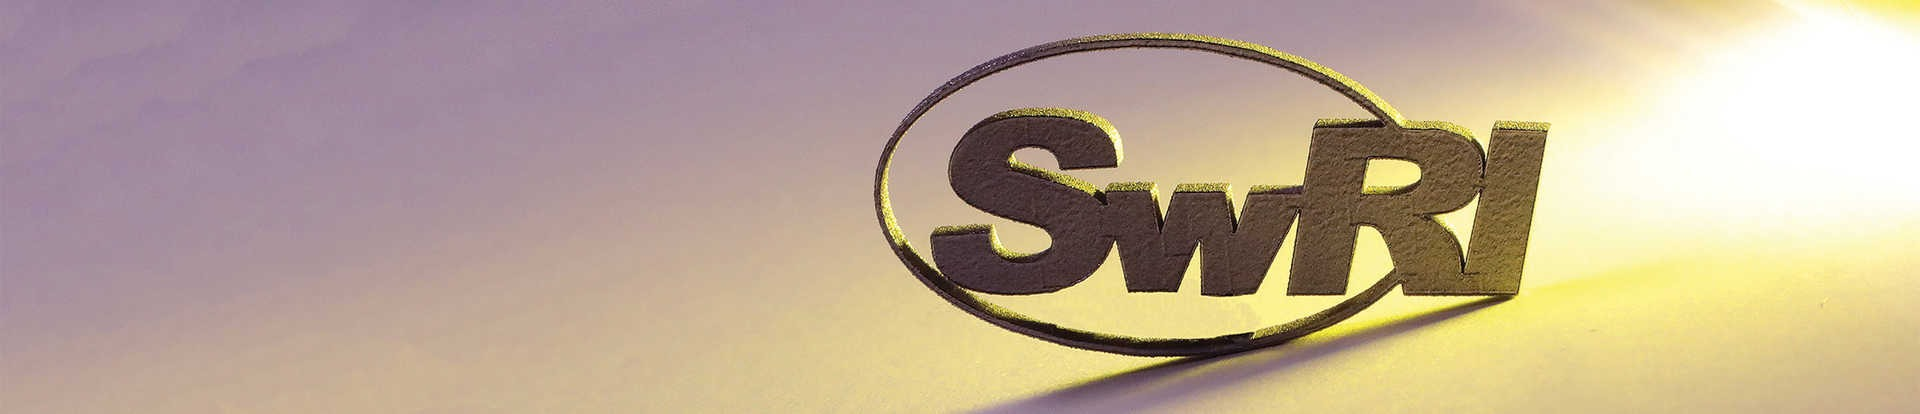 SwRI logo cut from a titanium block with a shadow falling on the left side